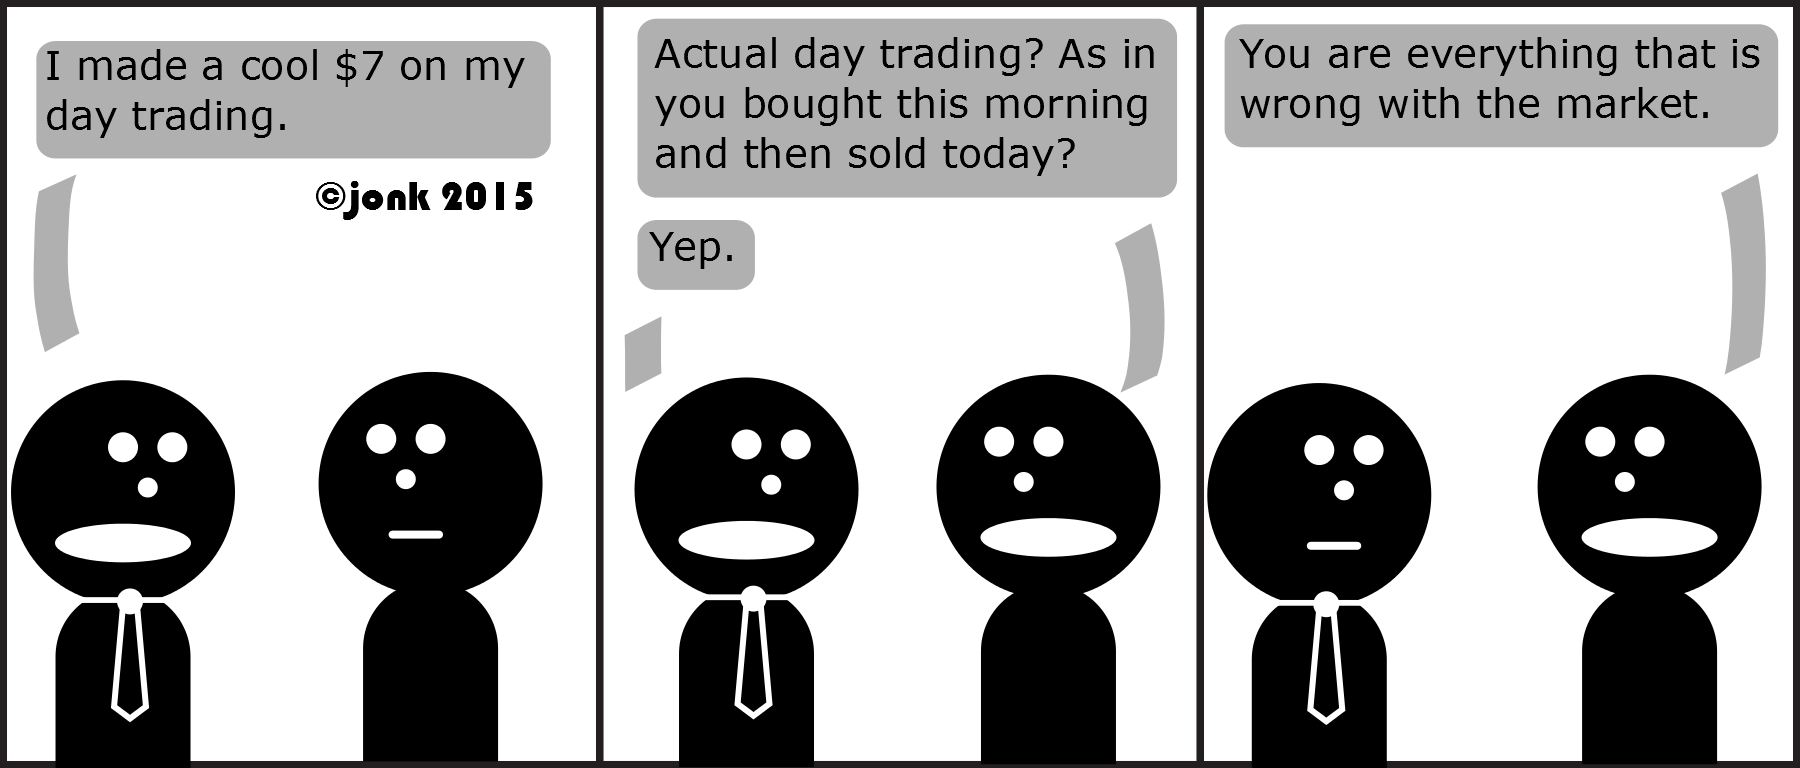 Tie: I made a cool $7 on my day trading. Guy: Actual day trading? As in you bought this morning and then sold today? Tie: Yep Guy: You are everything that is wrong with the market.   © Jonathan Kroupa 2015